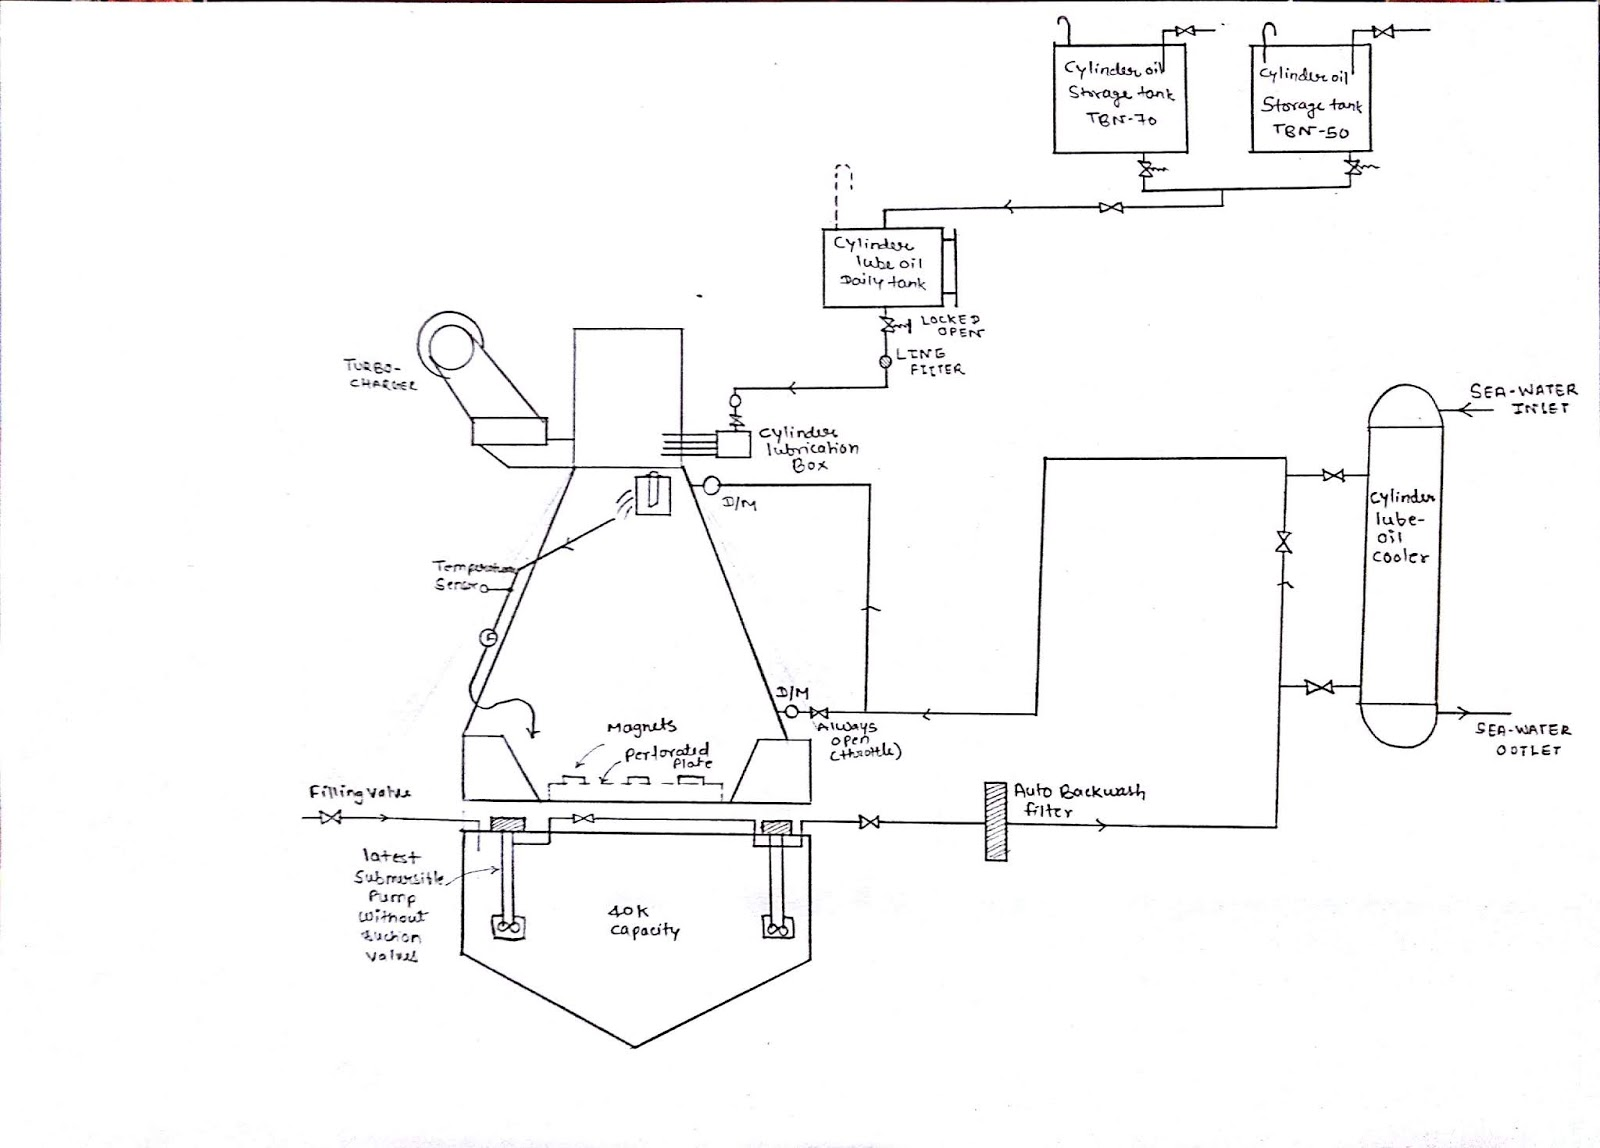 Lube Oil System Diagram 2001 Dodge Dakota Headlight Wiring Engine Oiling Library Let Us Understand Each Equipment One By